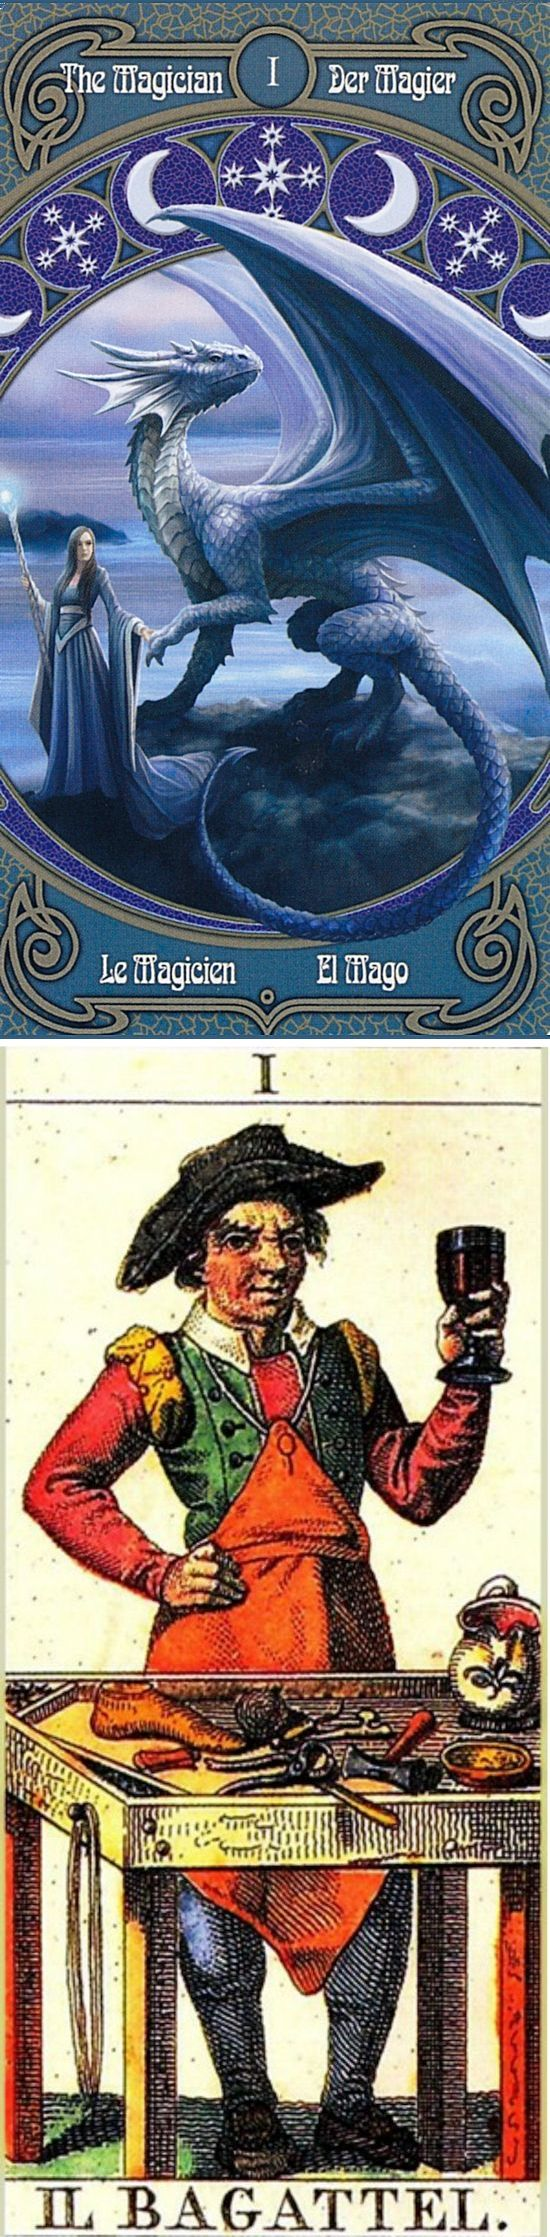 THE MAGICIAN: manifestation of desires and lies (reverse). Ann Stokes Tarot deck and Sofani Tarot deck: gypsytarotcards, real free psychic readings and tarot card reading in hindi 2016. Best 2017 tarot bag pattern and tarot reading spreads. #themoon #majorarcana #android #hermit #spells